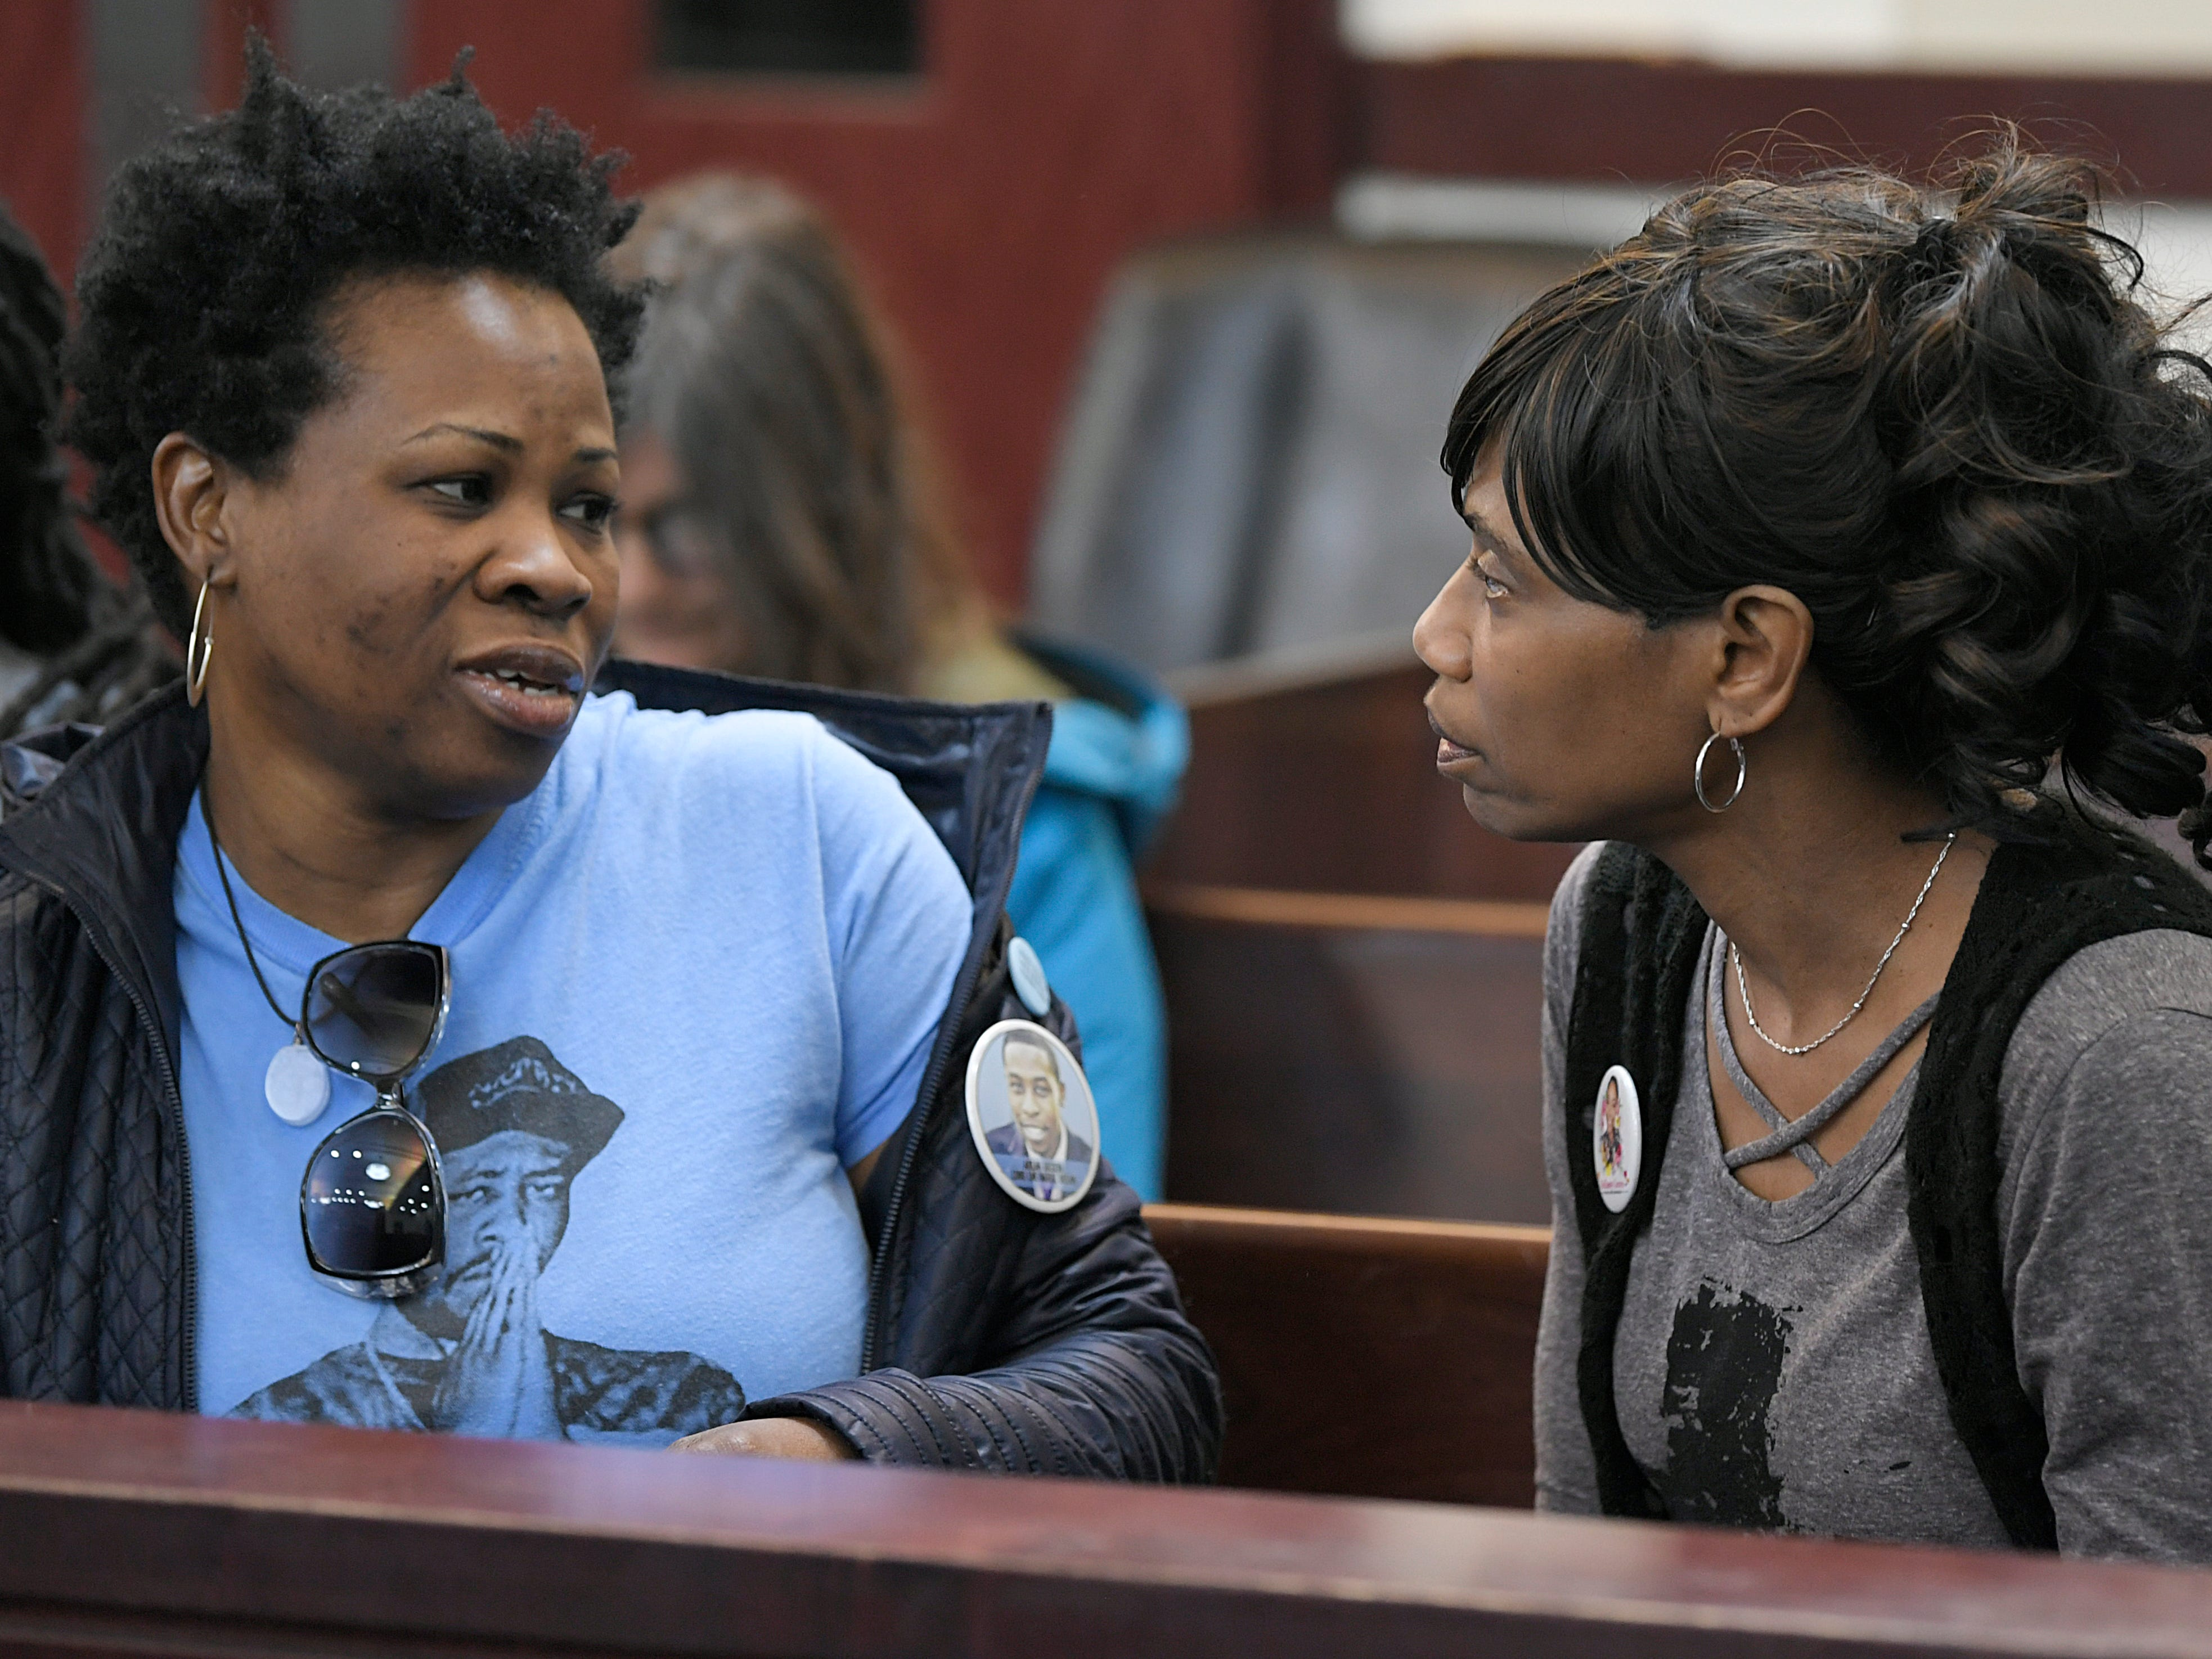 Shaundelle Brooks, mother of Akilah Dasilva, and Shirl Baker, DeEbony Groves' mom, talk before a hearing on Waffle House shooting suspect Travis Reinking in Judge Mark Fishburn's courtroom in Nashville on Wednesday, Feb. 13, 2019.